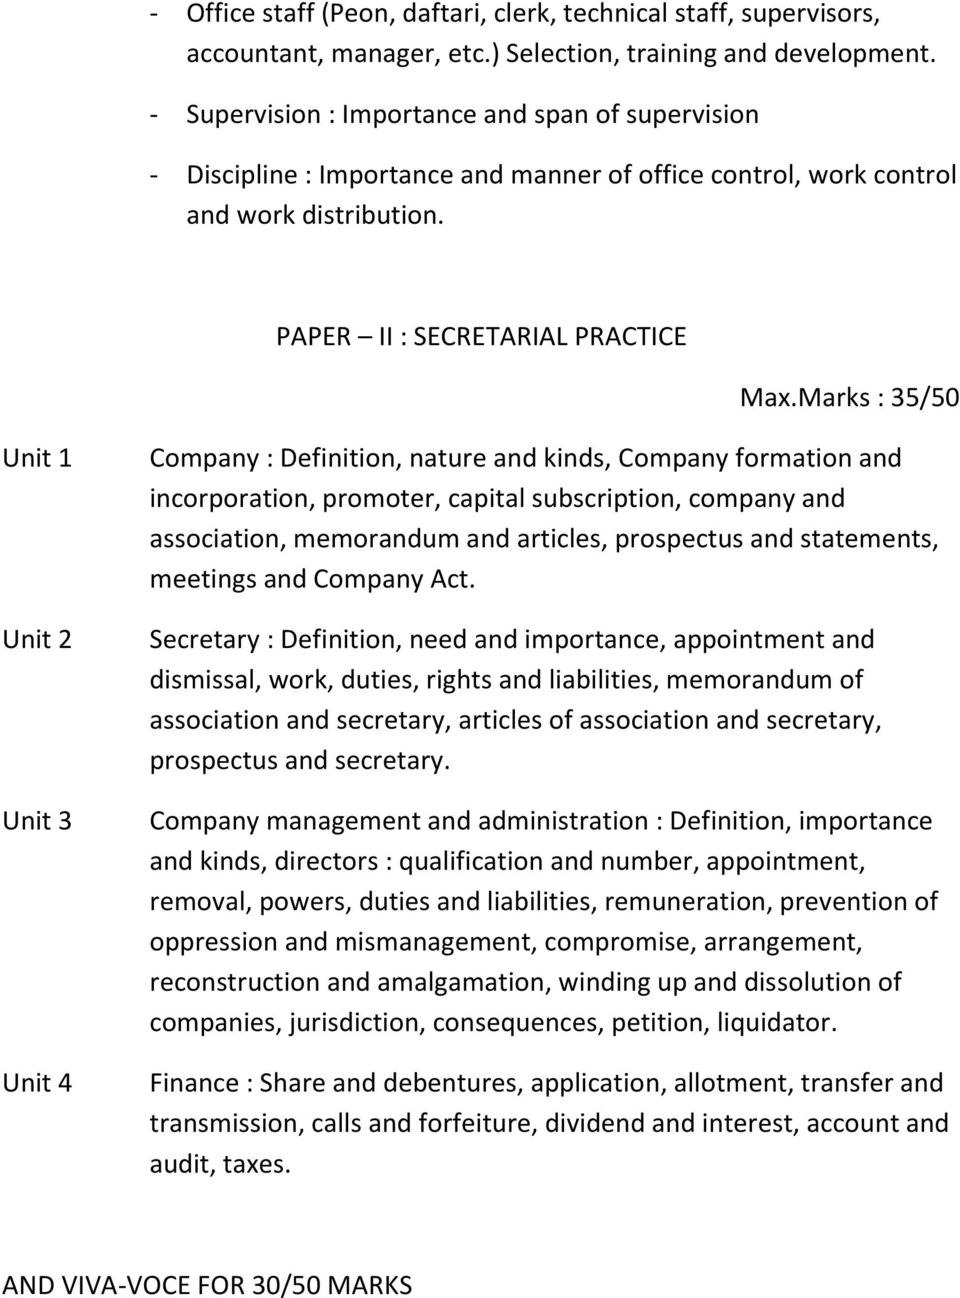 Marks : 35/50 Unit 1 Unit 2 Unit 3 Unit 4 Company : Definition, nature and kinds, Company formation and incorporation, promoter, capital subscription, company and association, memorandum and